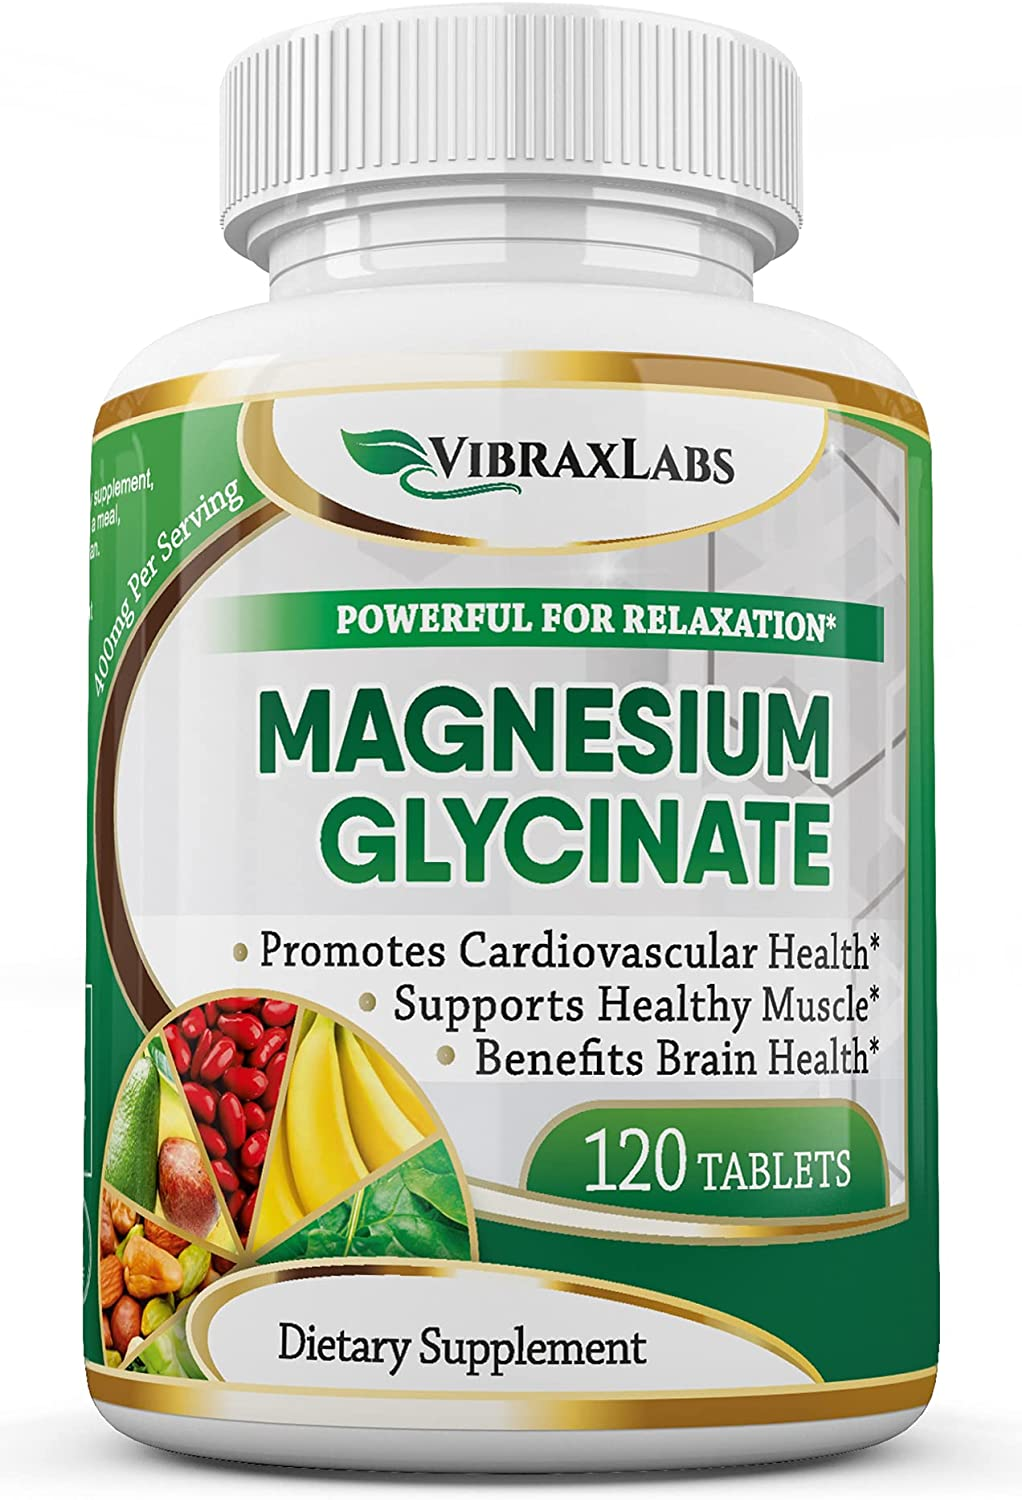 VibraxLabs Luxury Magnesium Glycinate Supplement 400mg Men for Opening large release sale Wome